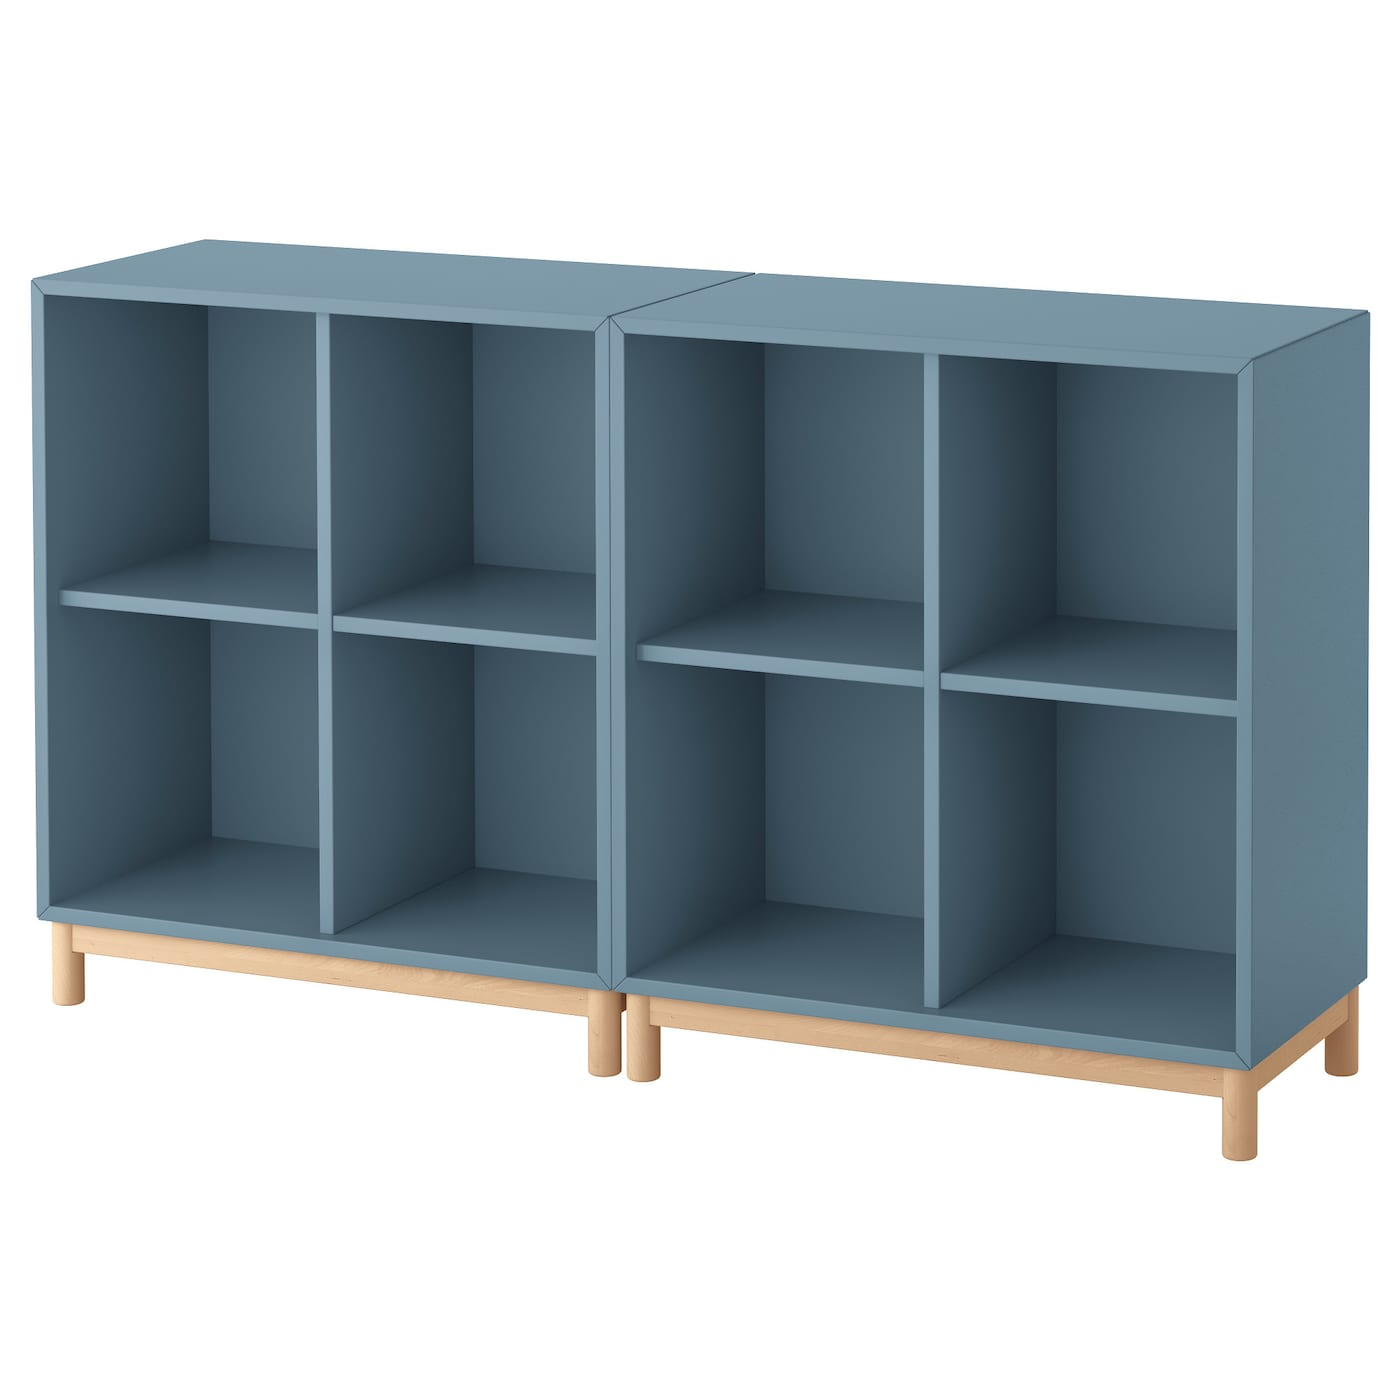 Free try out of usm mid grey shelf from usm haller in 3d for Sideboard untergestell